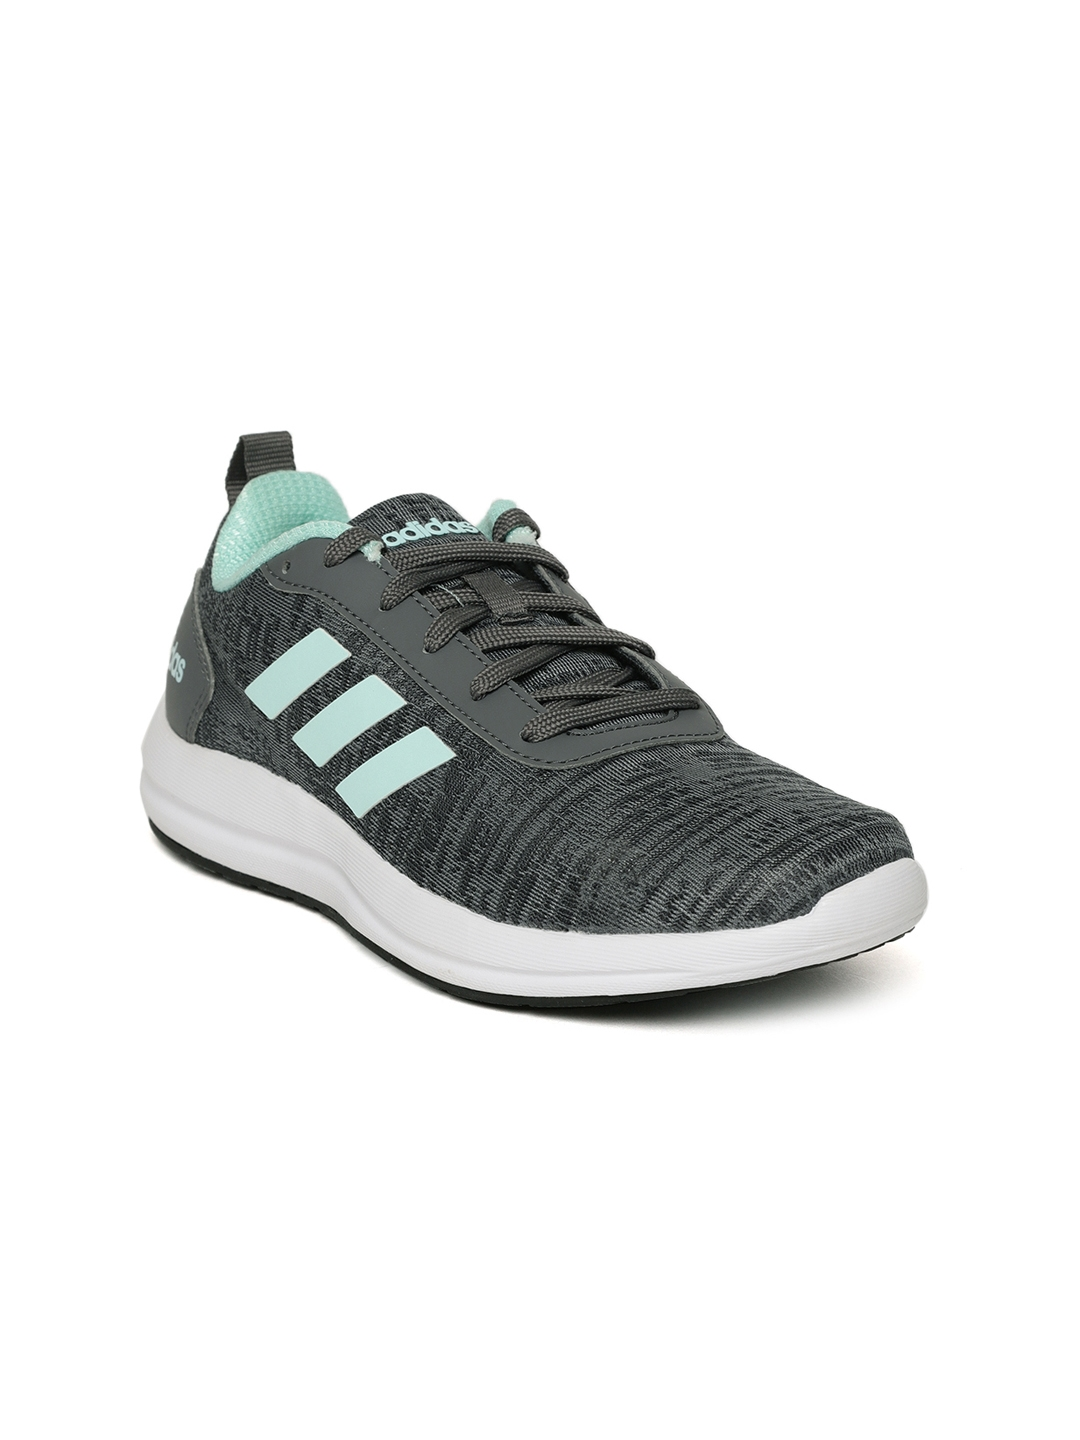 74ec993ba6359 Buy ADIDAS Women Grey VIDELL Patterned Running Shoes - Sports Shoes ...